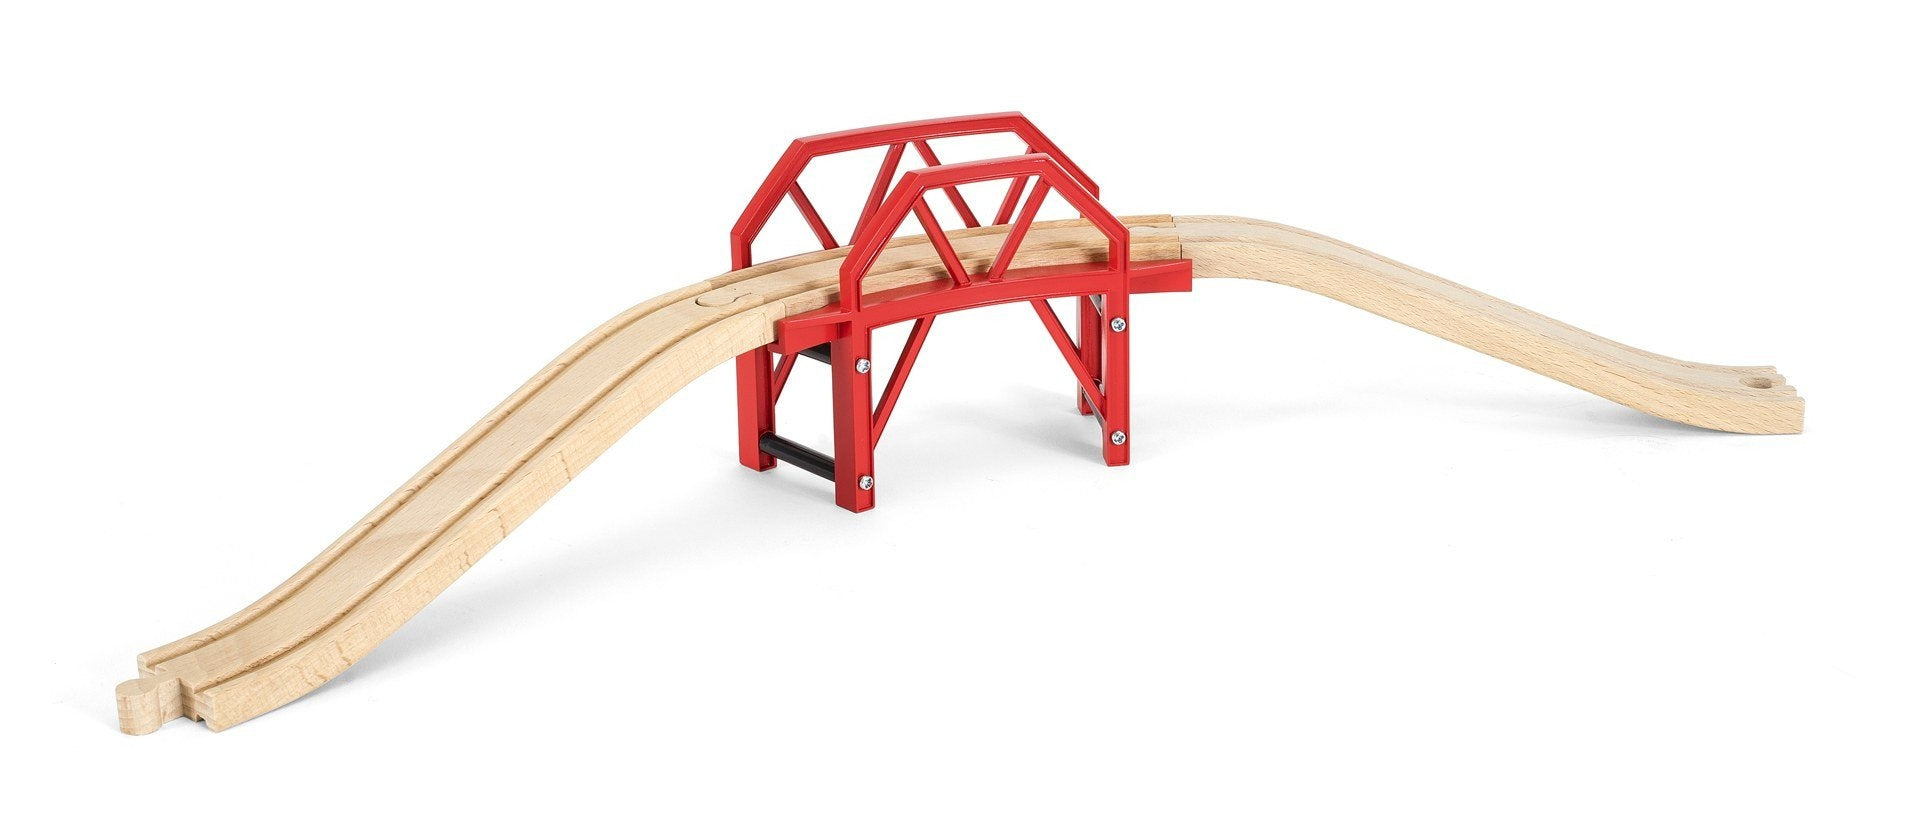 Curved Bridge - Brio